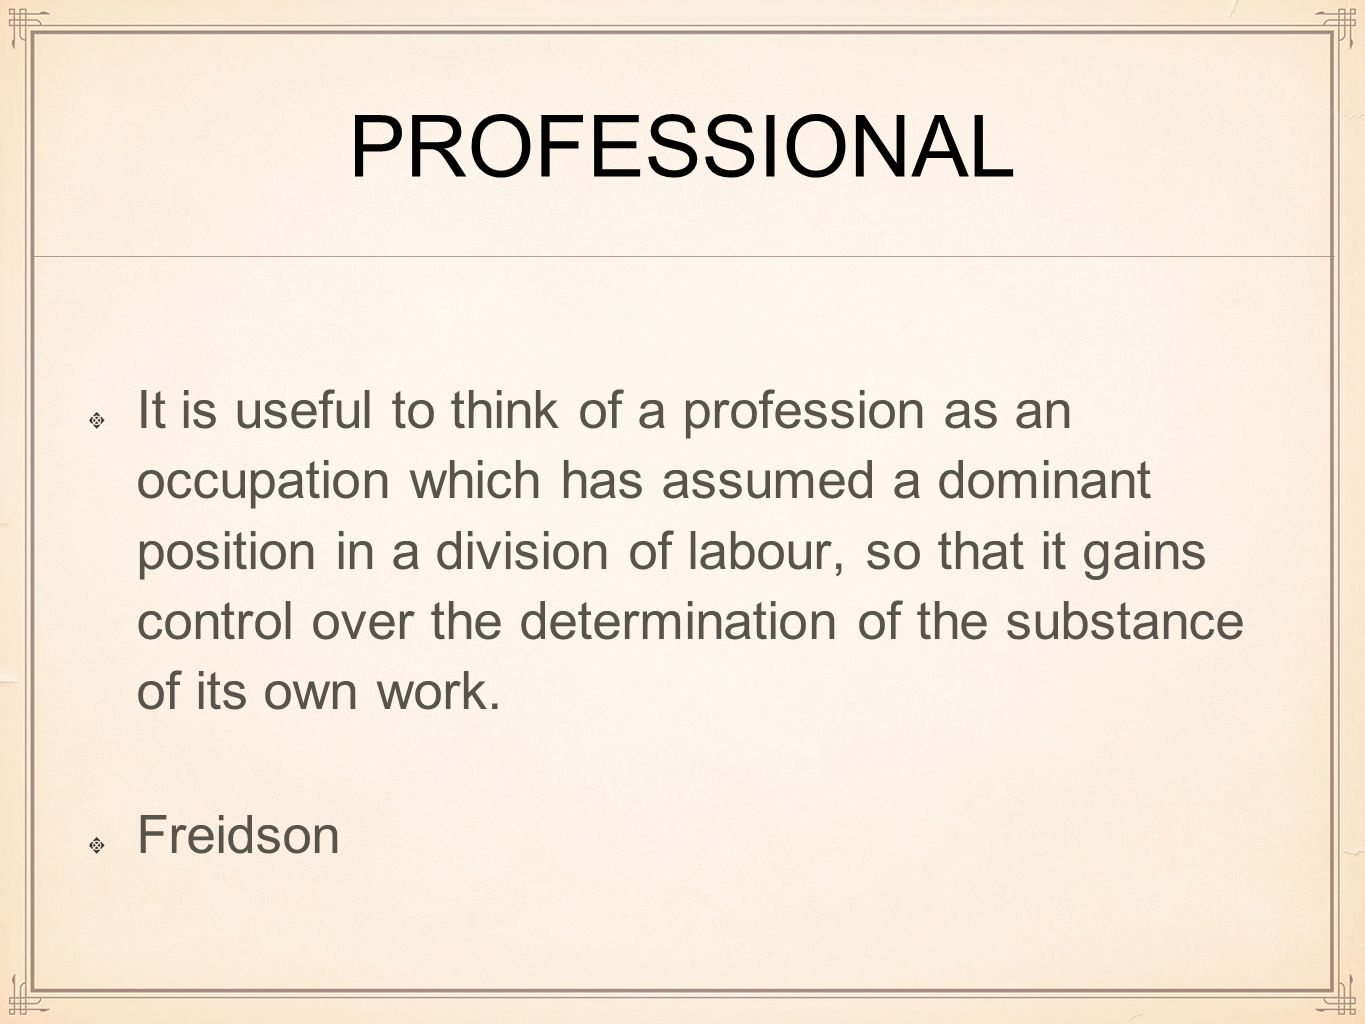 PROFESSIONAL It is useful to think of a profession as an occupation which has assumed a dominant position in a division of labour, so that it gains control over the determination of the substance of its own work.